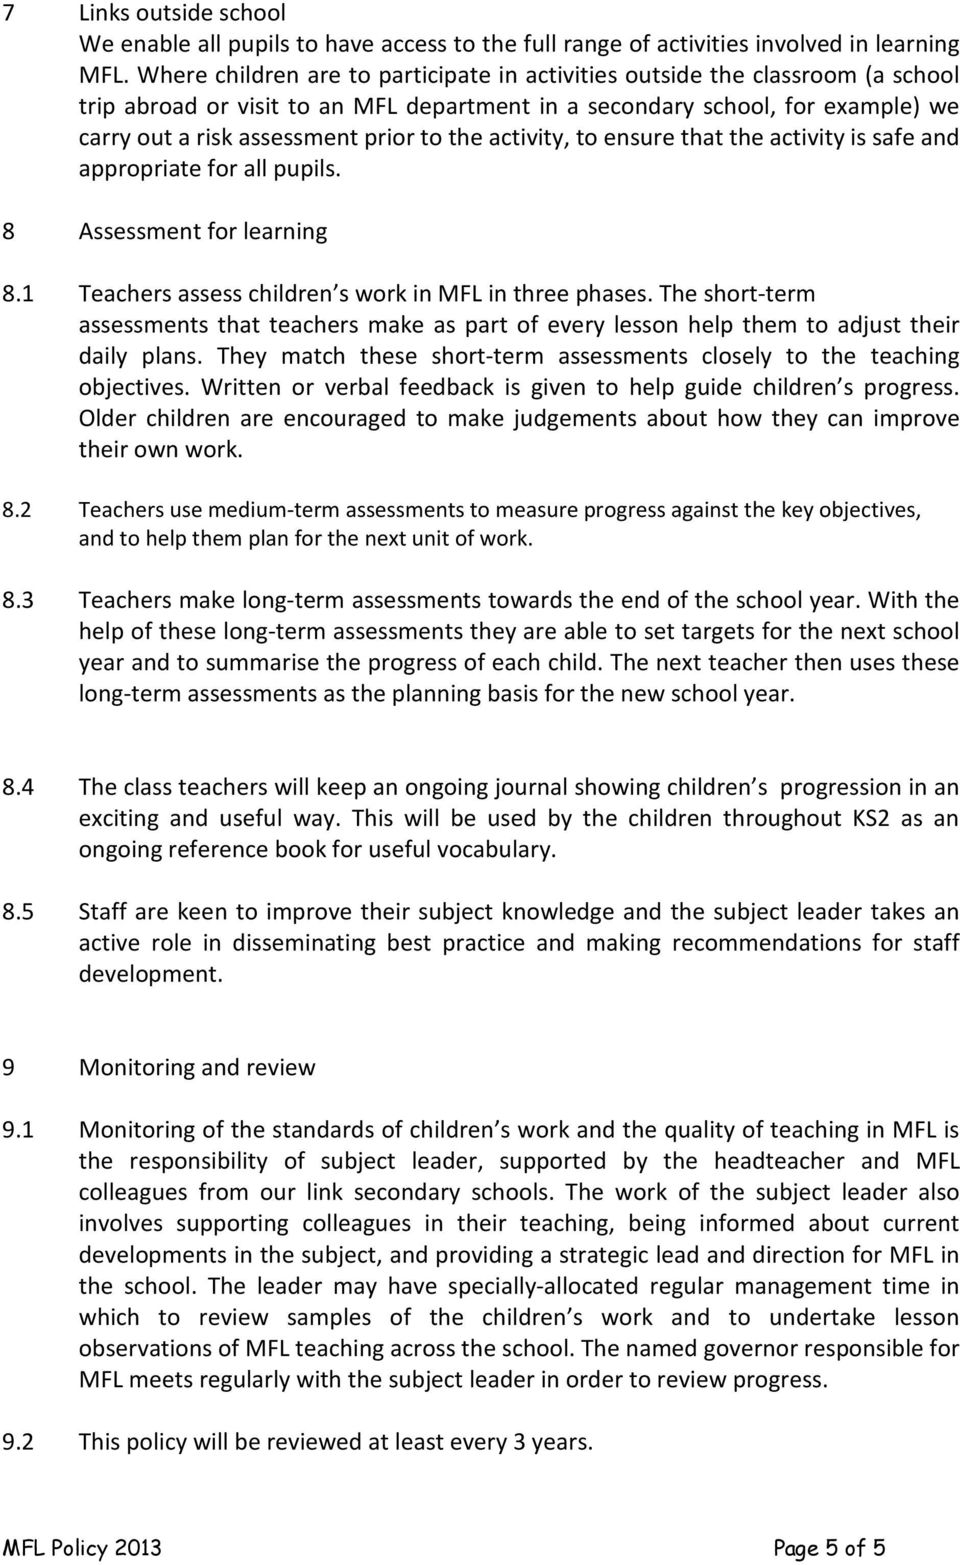 the activity, to ensure that the activity is safe and appropriate for all pupils. 8 Assessment for learning 8.1 Teachers assess children s work in MFL in three phases.